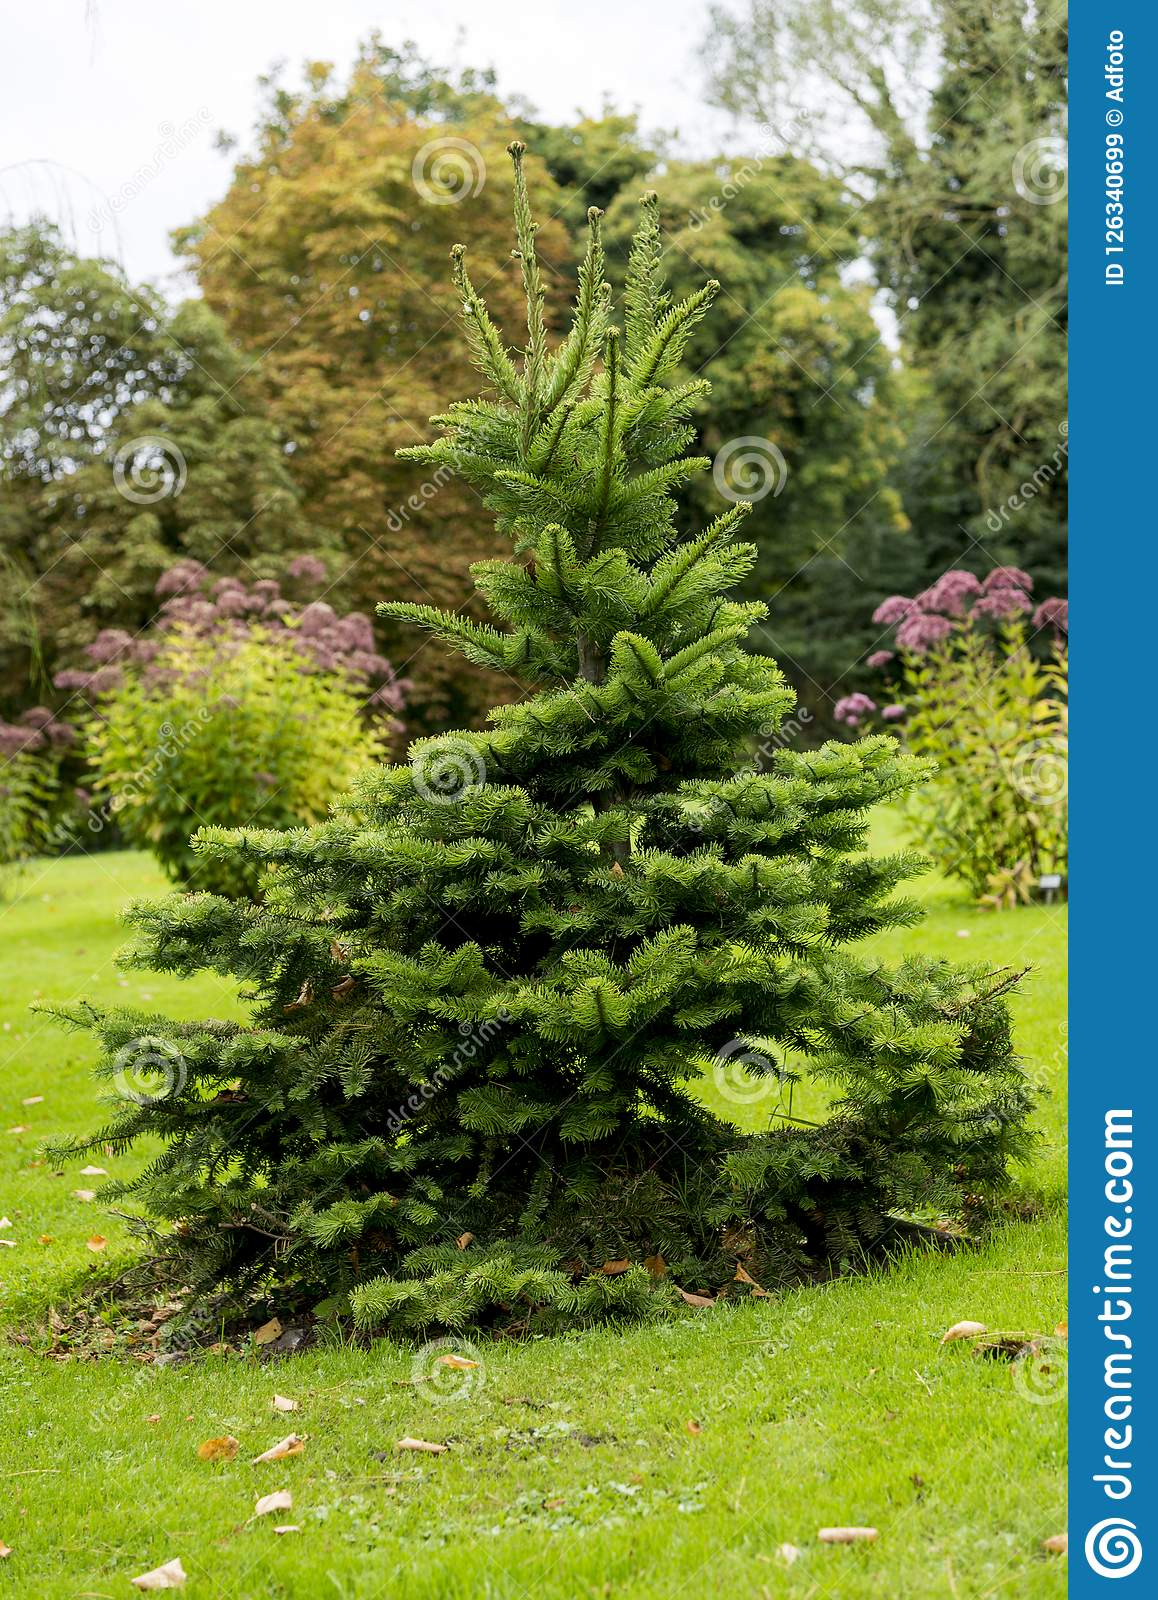 Picea Abies Pusch The Norway Spruce Stock Image Image Of